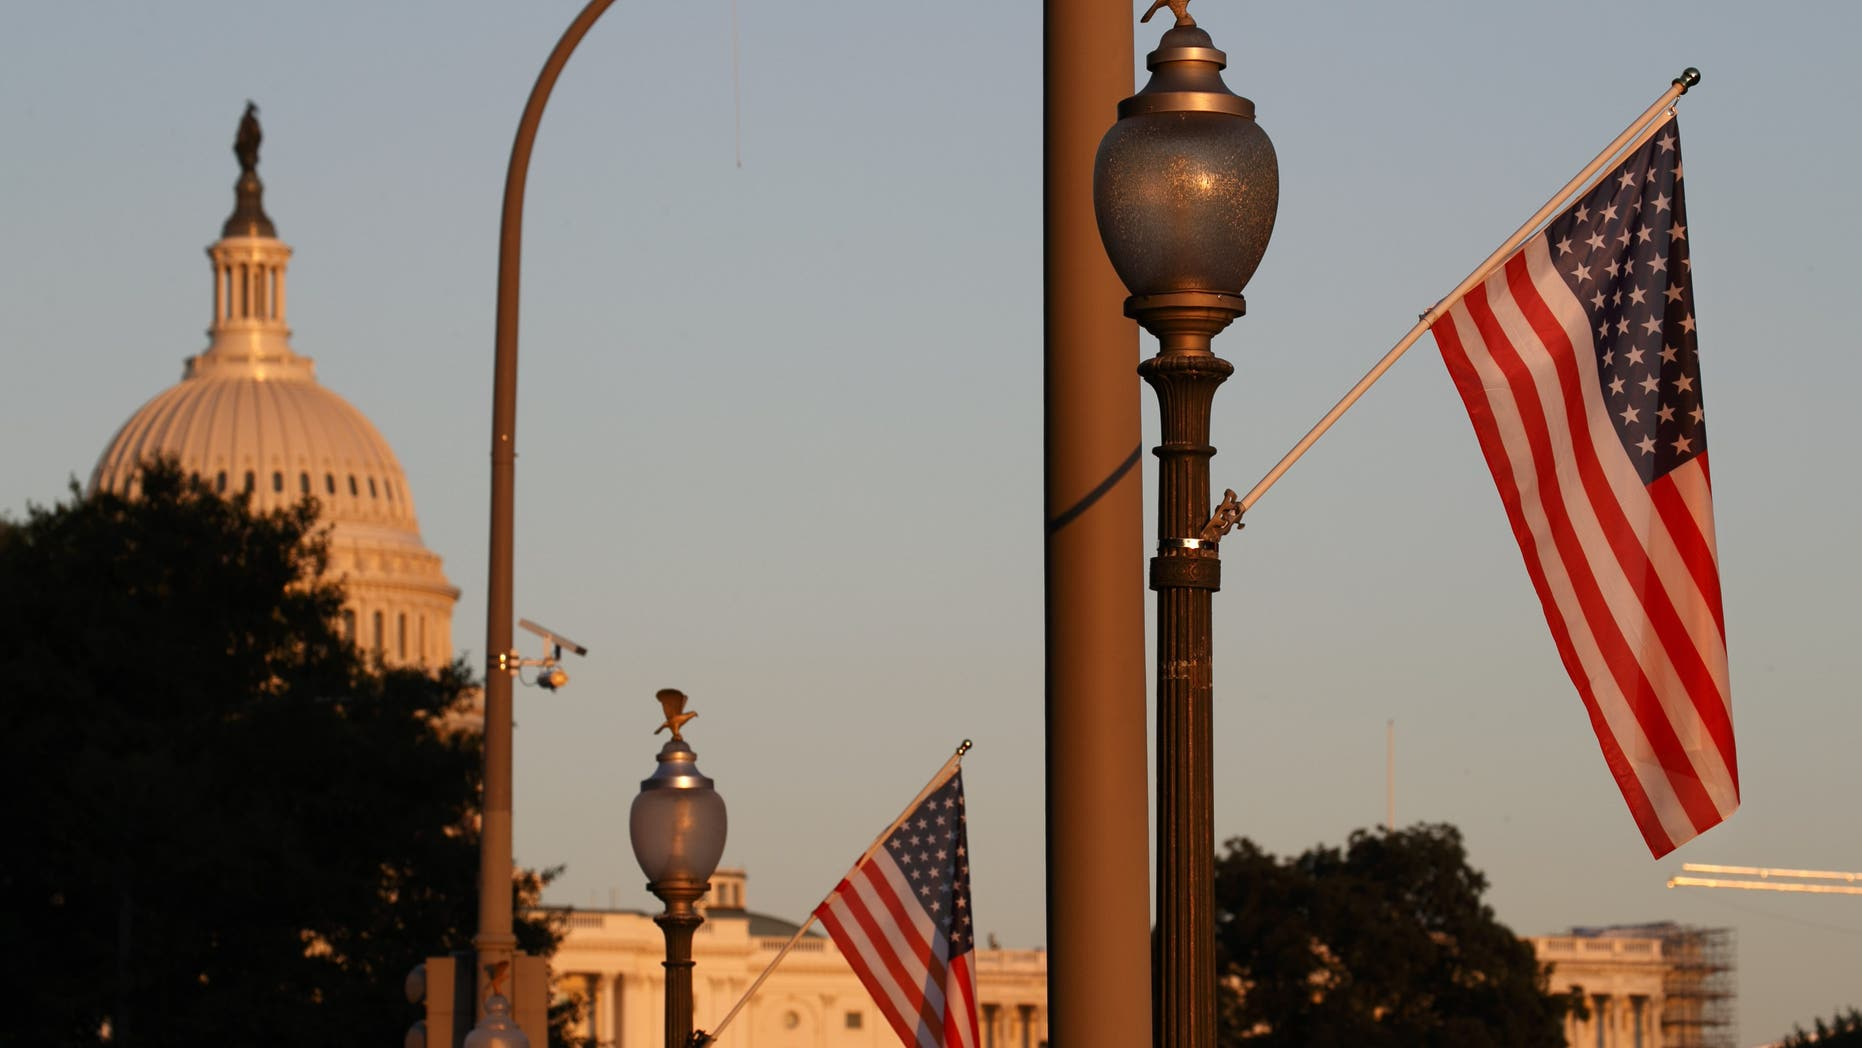 Flags fly at sunset with 51 instead of the usual 50 stars, along Pennsylvania Ave., part of a display in support of statehood for the District of Columbia, Sunday, Sept. 15, 2019, in Washington. (AP Photo/Jacquelyn Martin)